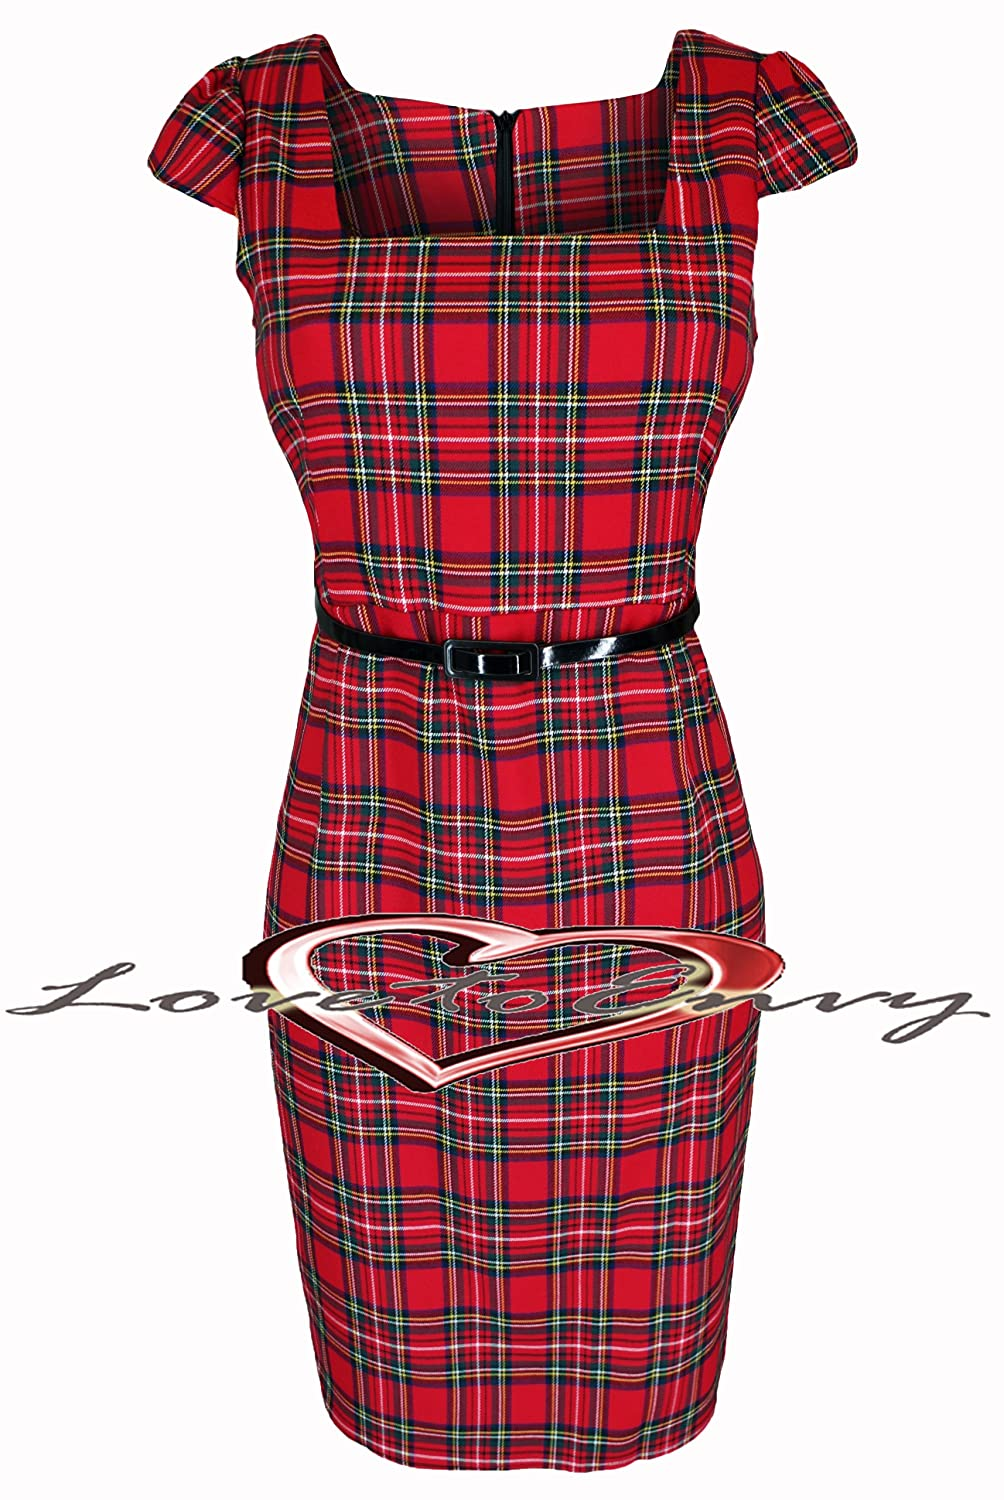 Lovetoenvy Tartan Dress Ladies New Elegant RED Check Dress (16 ...